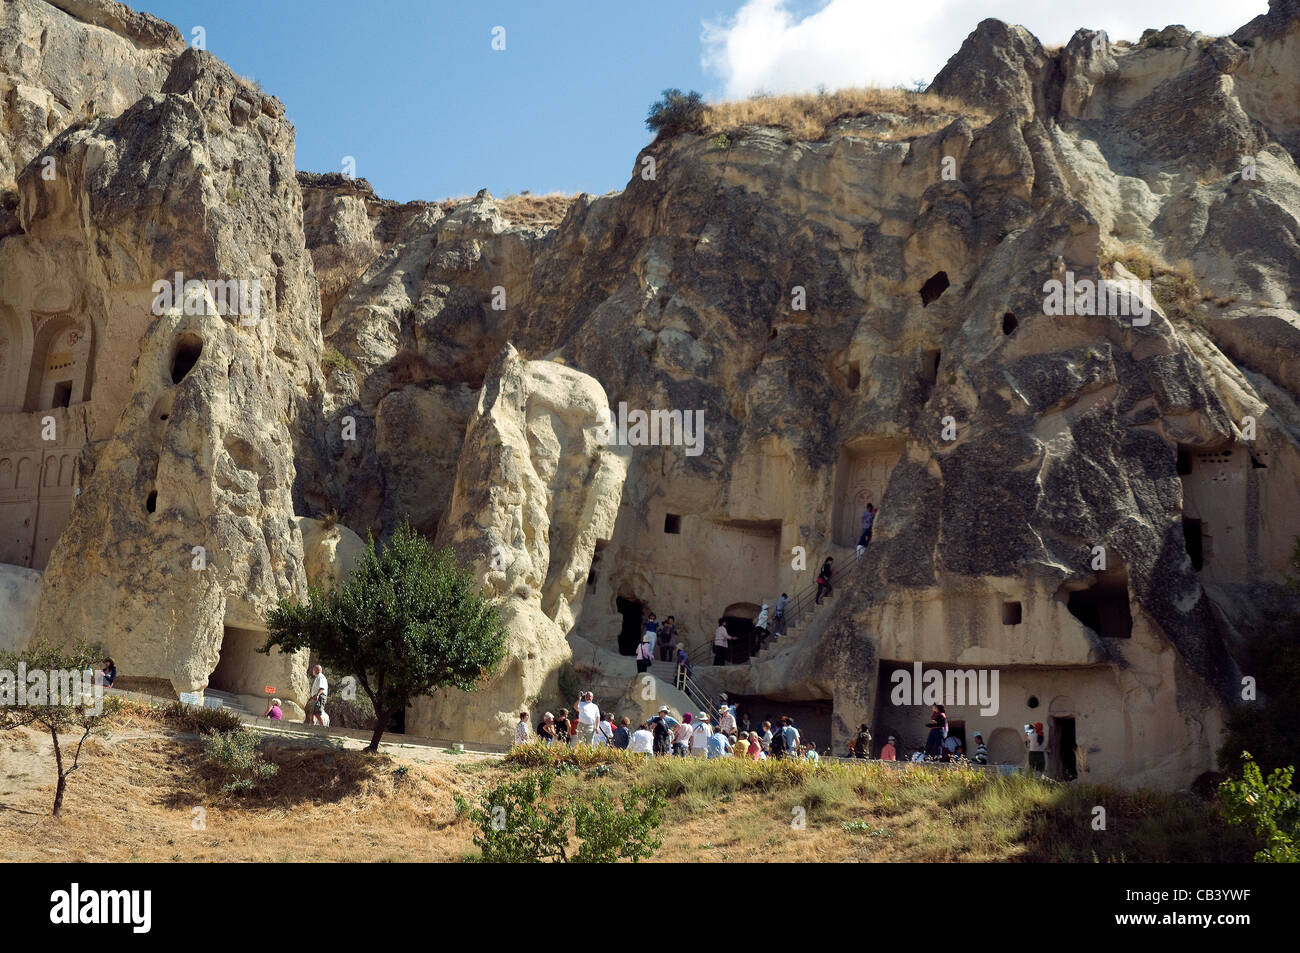 Tourists explore the Goreme Open Air museum's volcanically formed rock formations, caves and churches in Cappadocia - Stock Image